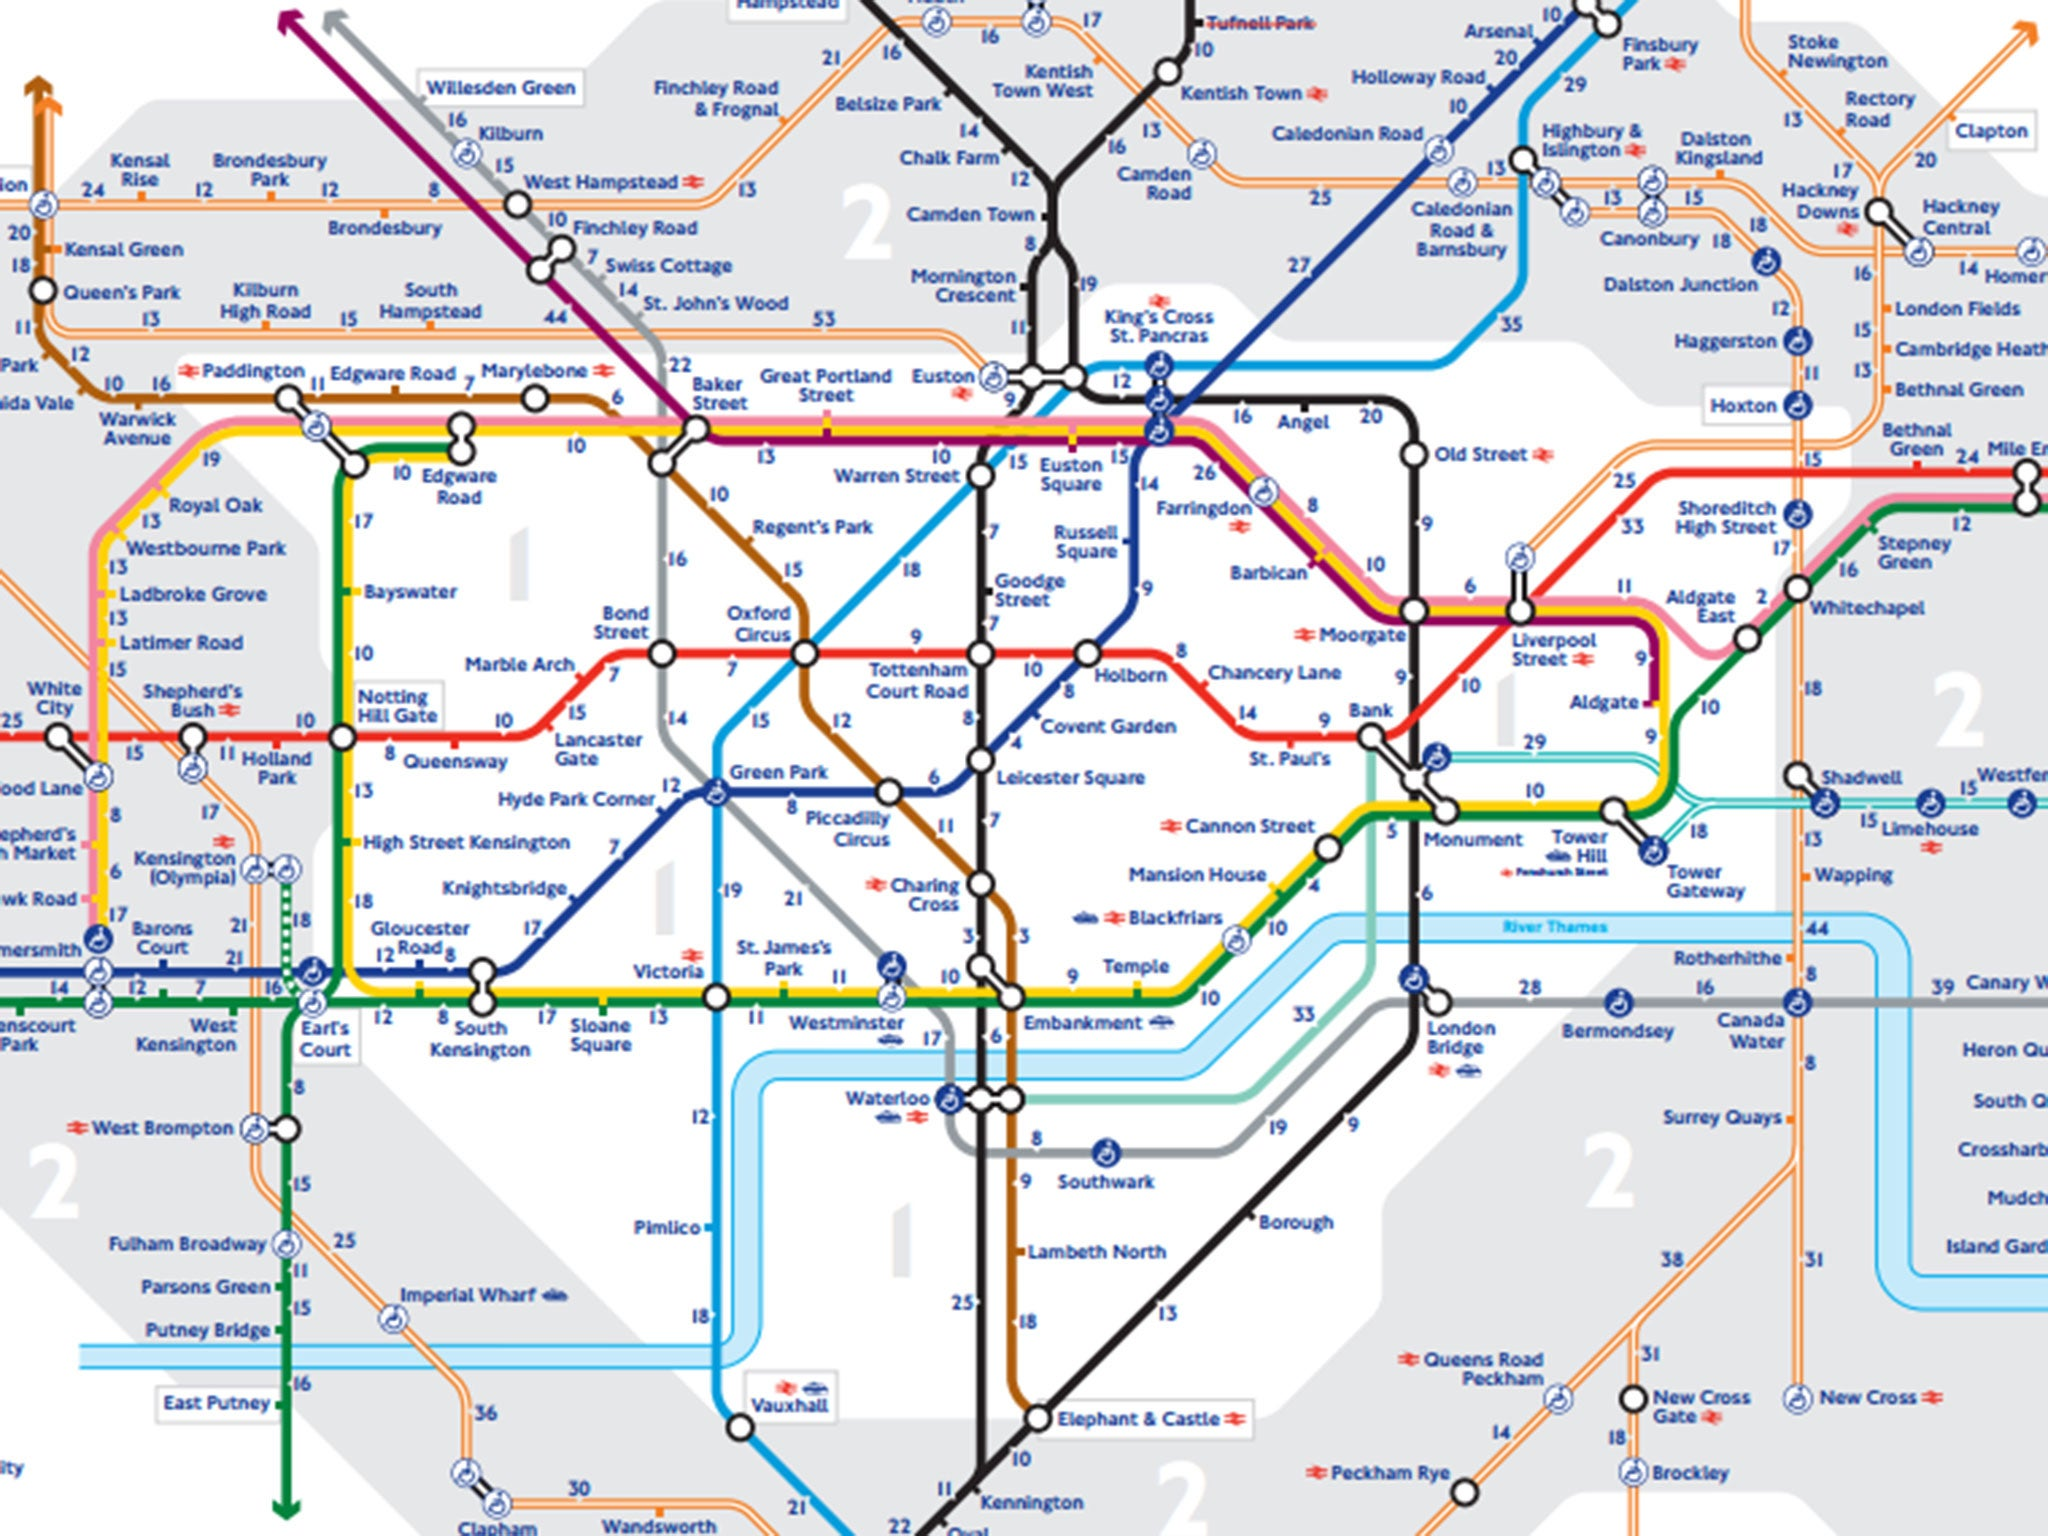 TfL Releases First Official walk The Tube Map For London